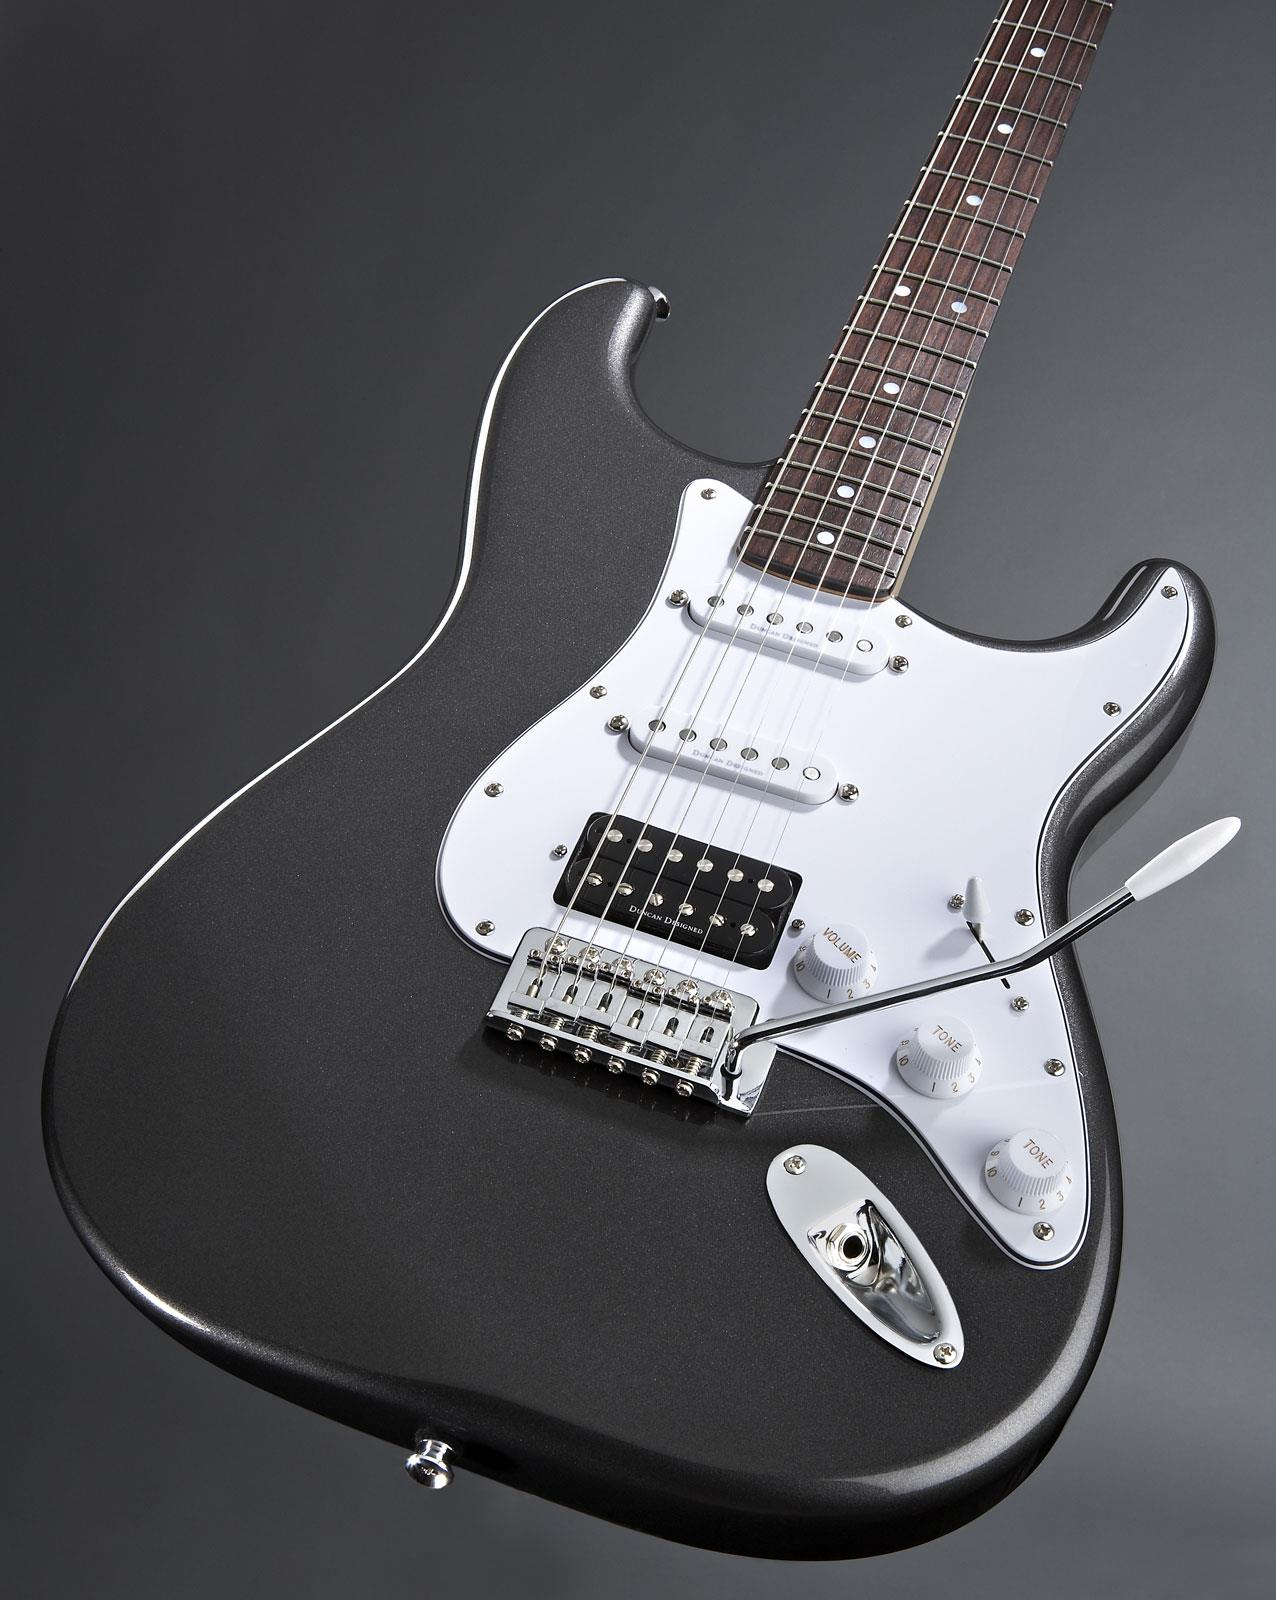 squier vintage modified strat hss gun metal grey keymusic. Black Bedroom Furniture Sets. Home Design Ideas